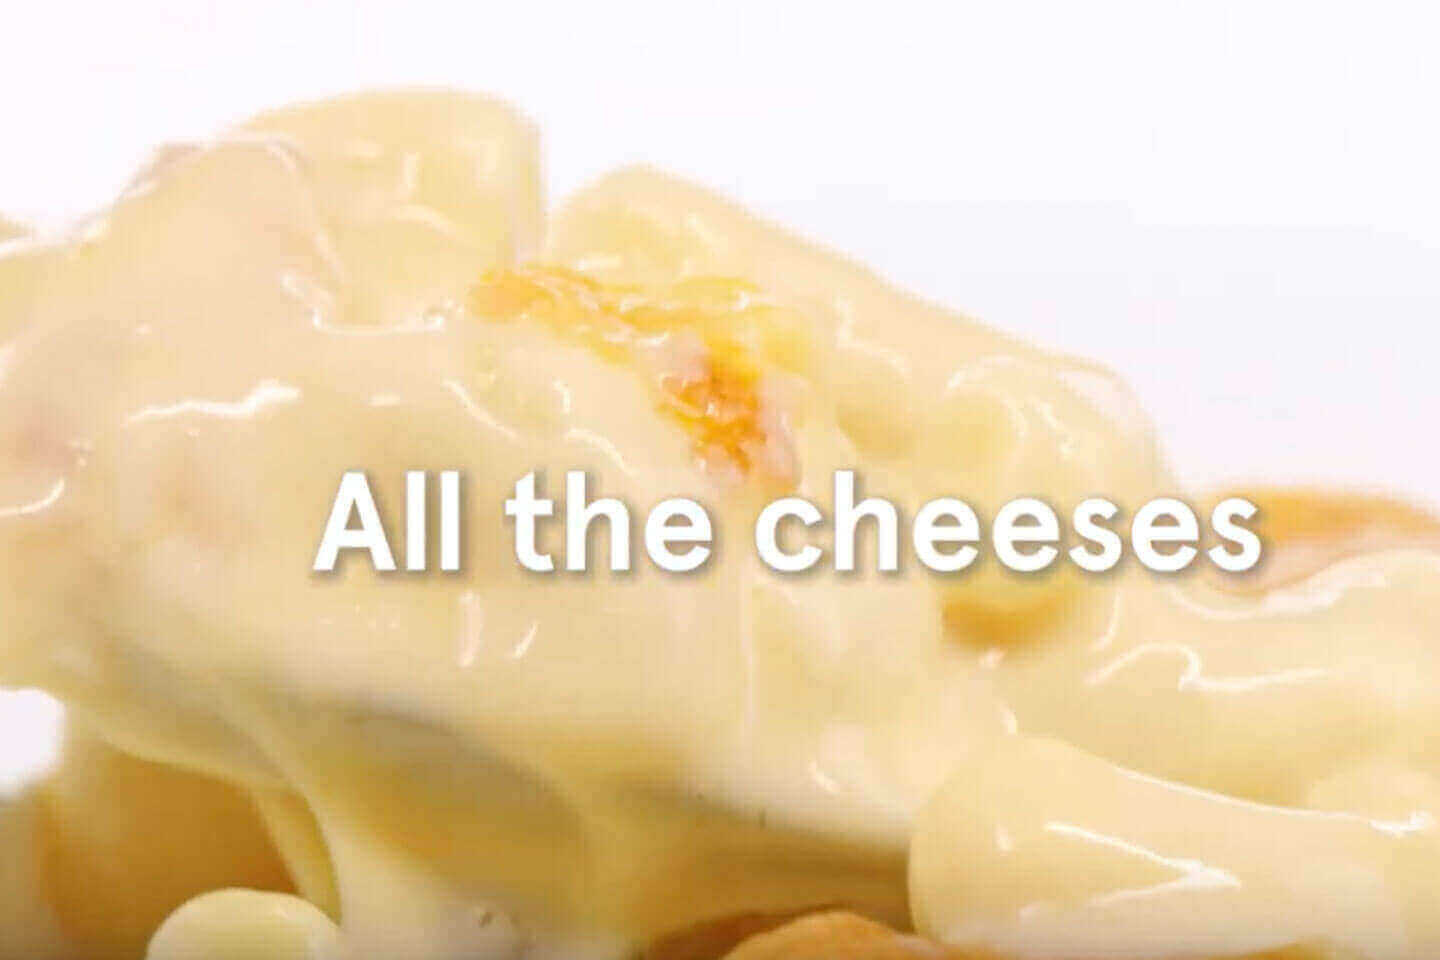 Chick-fil-A Mac and Cheese, all the cheeses